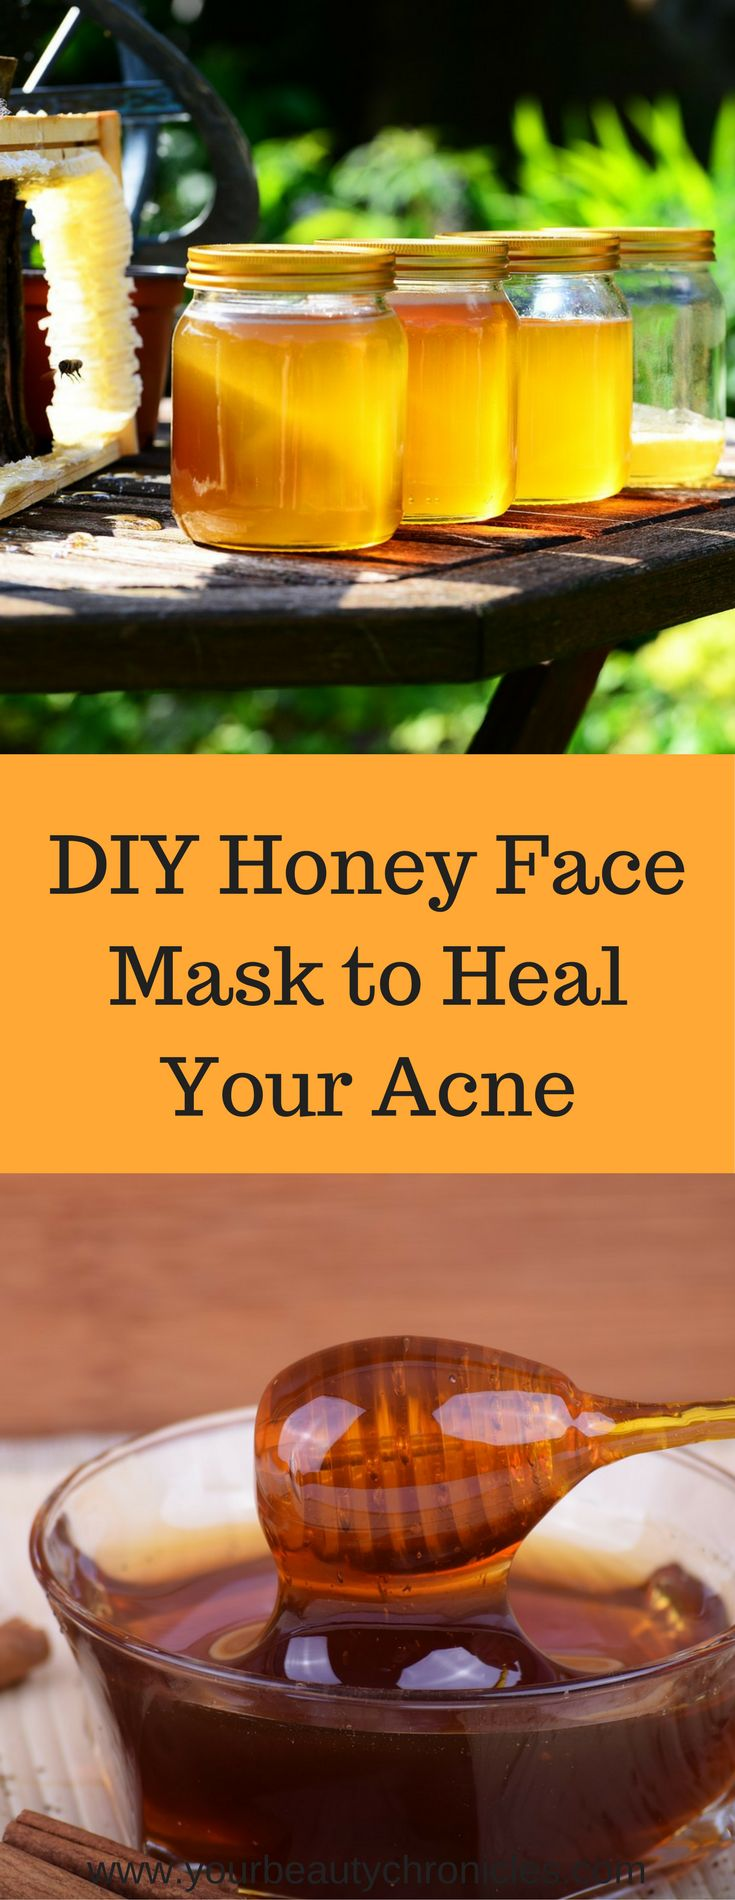 This mask made with honey helps heal your acne and calm down inflamed and irritated skin and bring down the redness on your face.